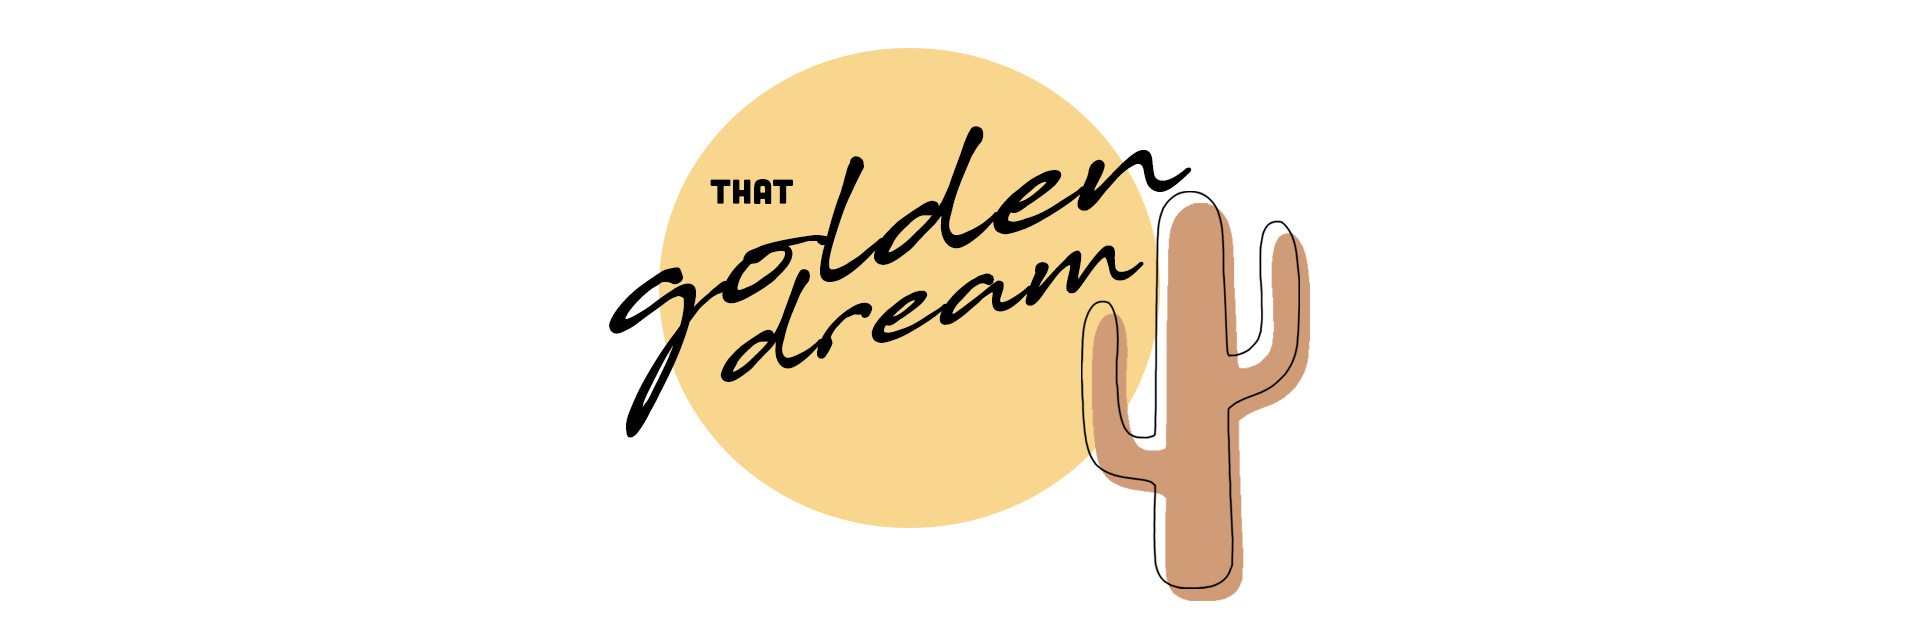 ThatGoldenDream